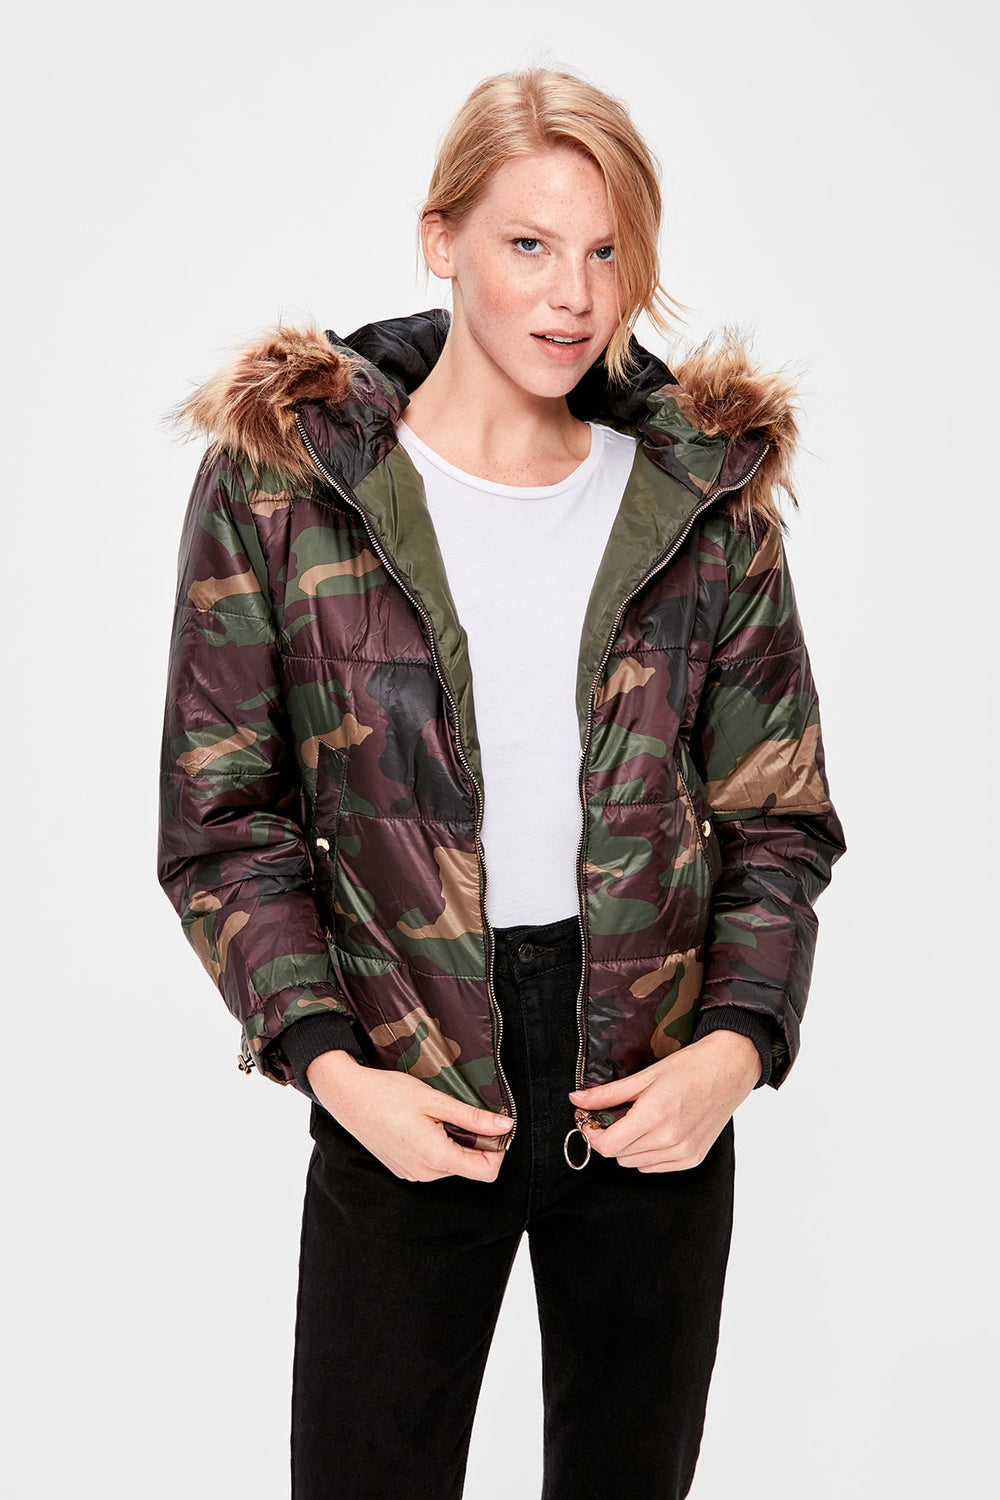 Multicolour Hooded Inflatable Coat - Top Maxy